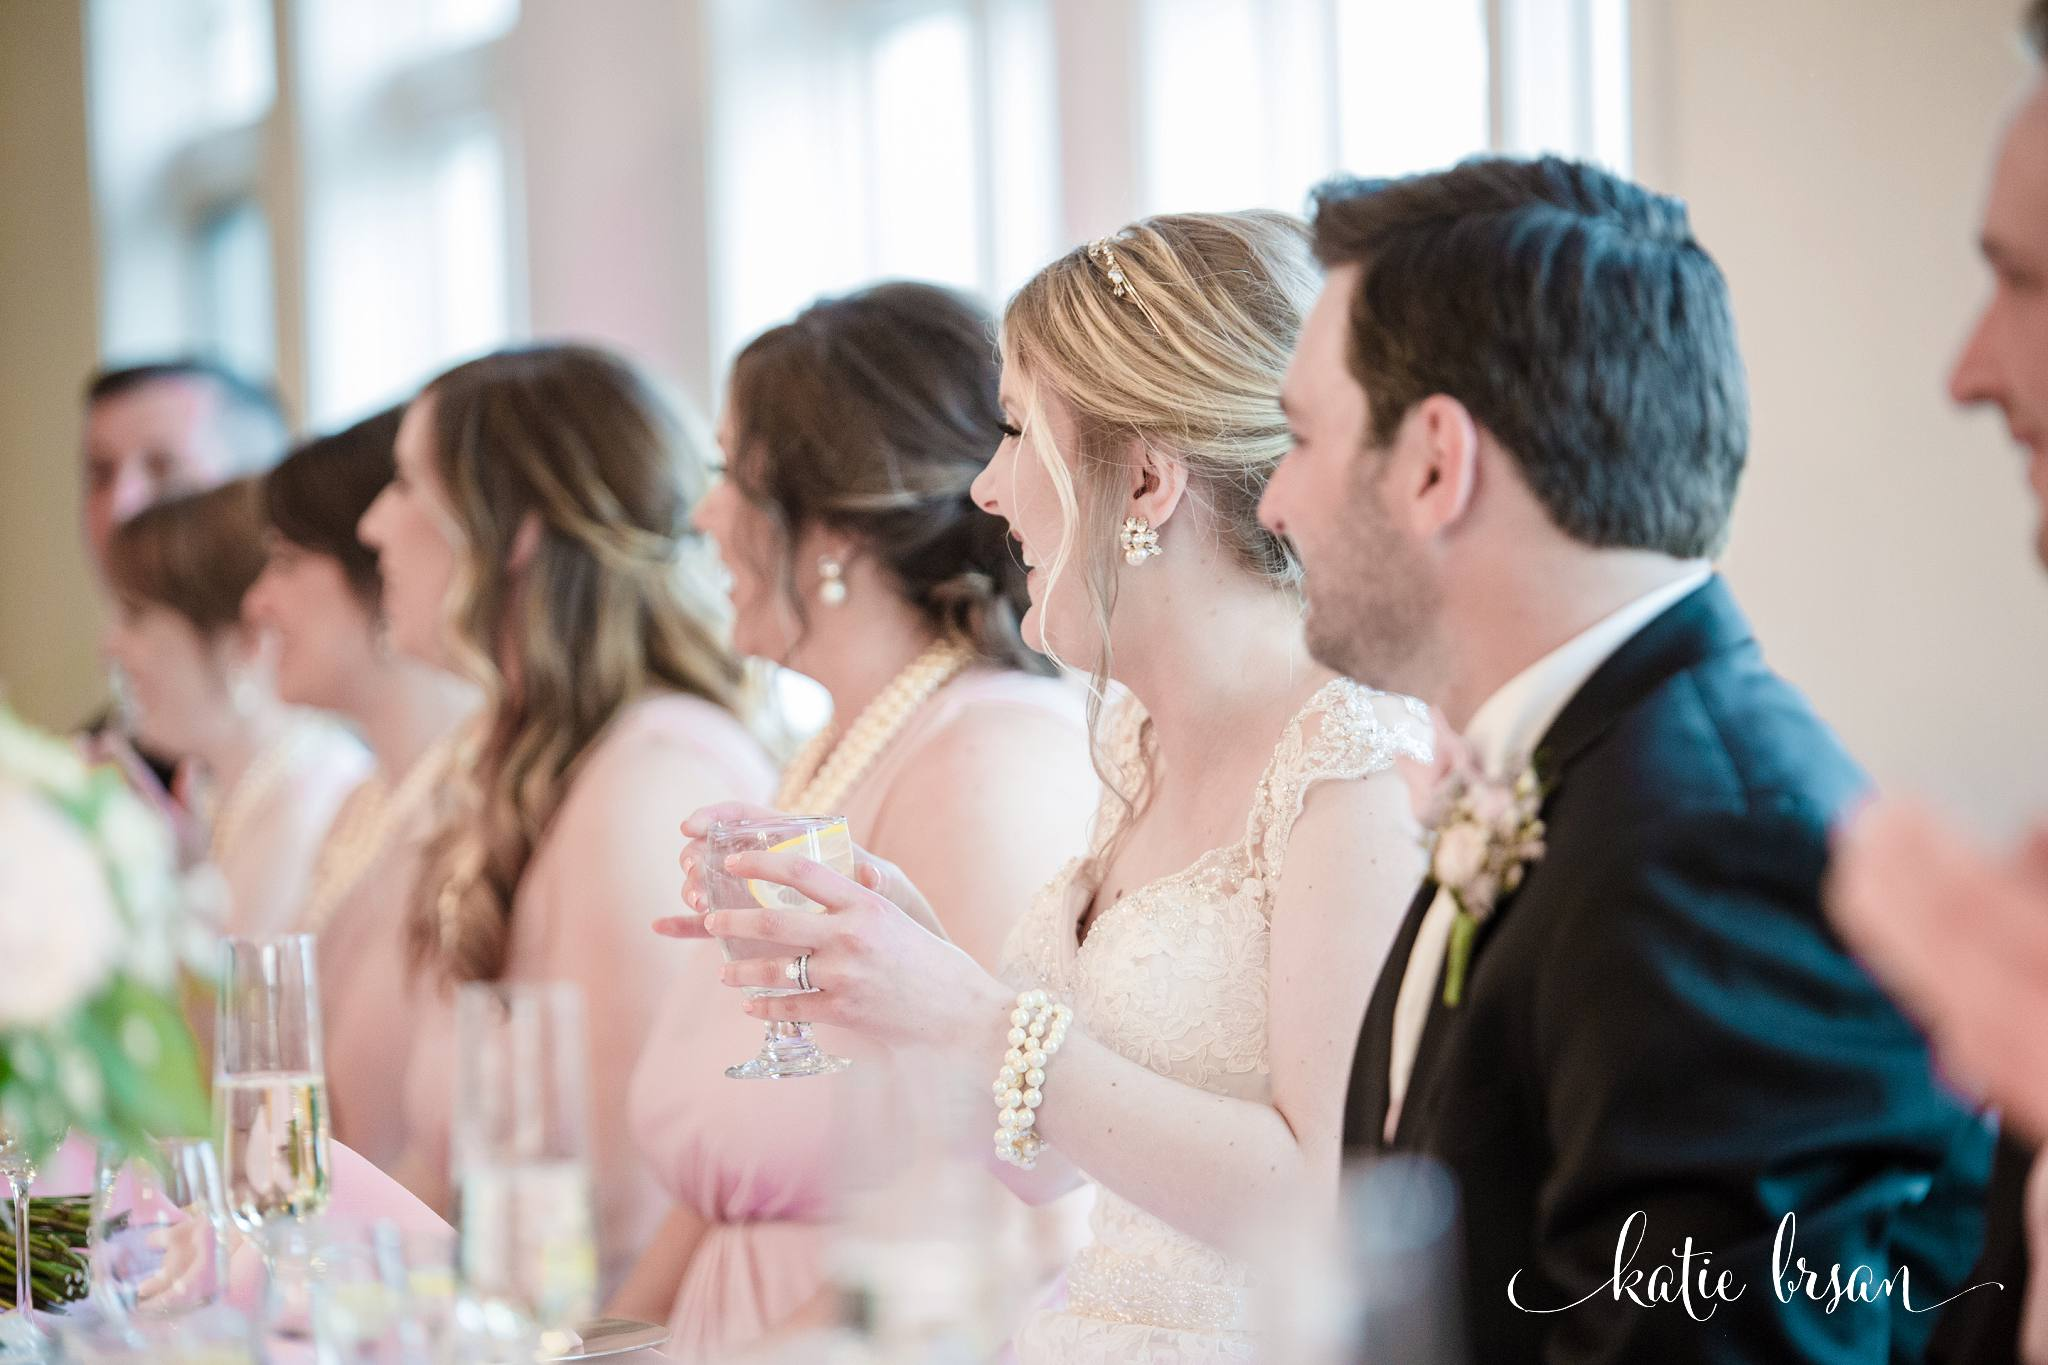 Mokena_Lemont_Wedding_Ruffled_Feathers_Wedding_1421.jpg